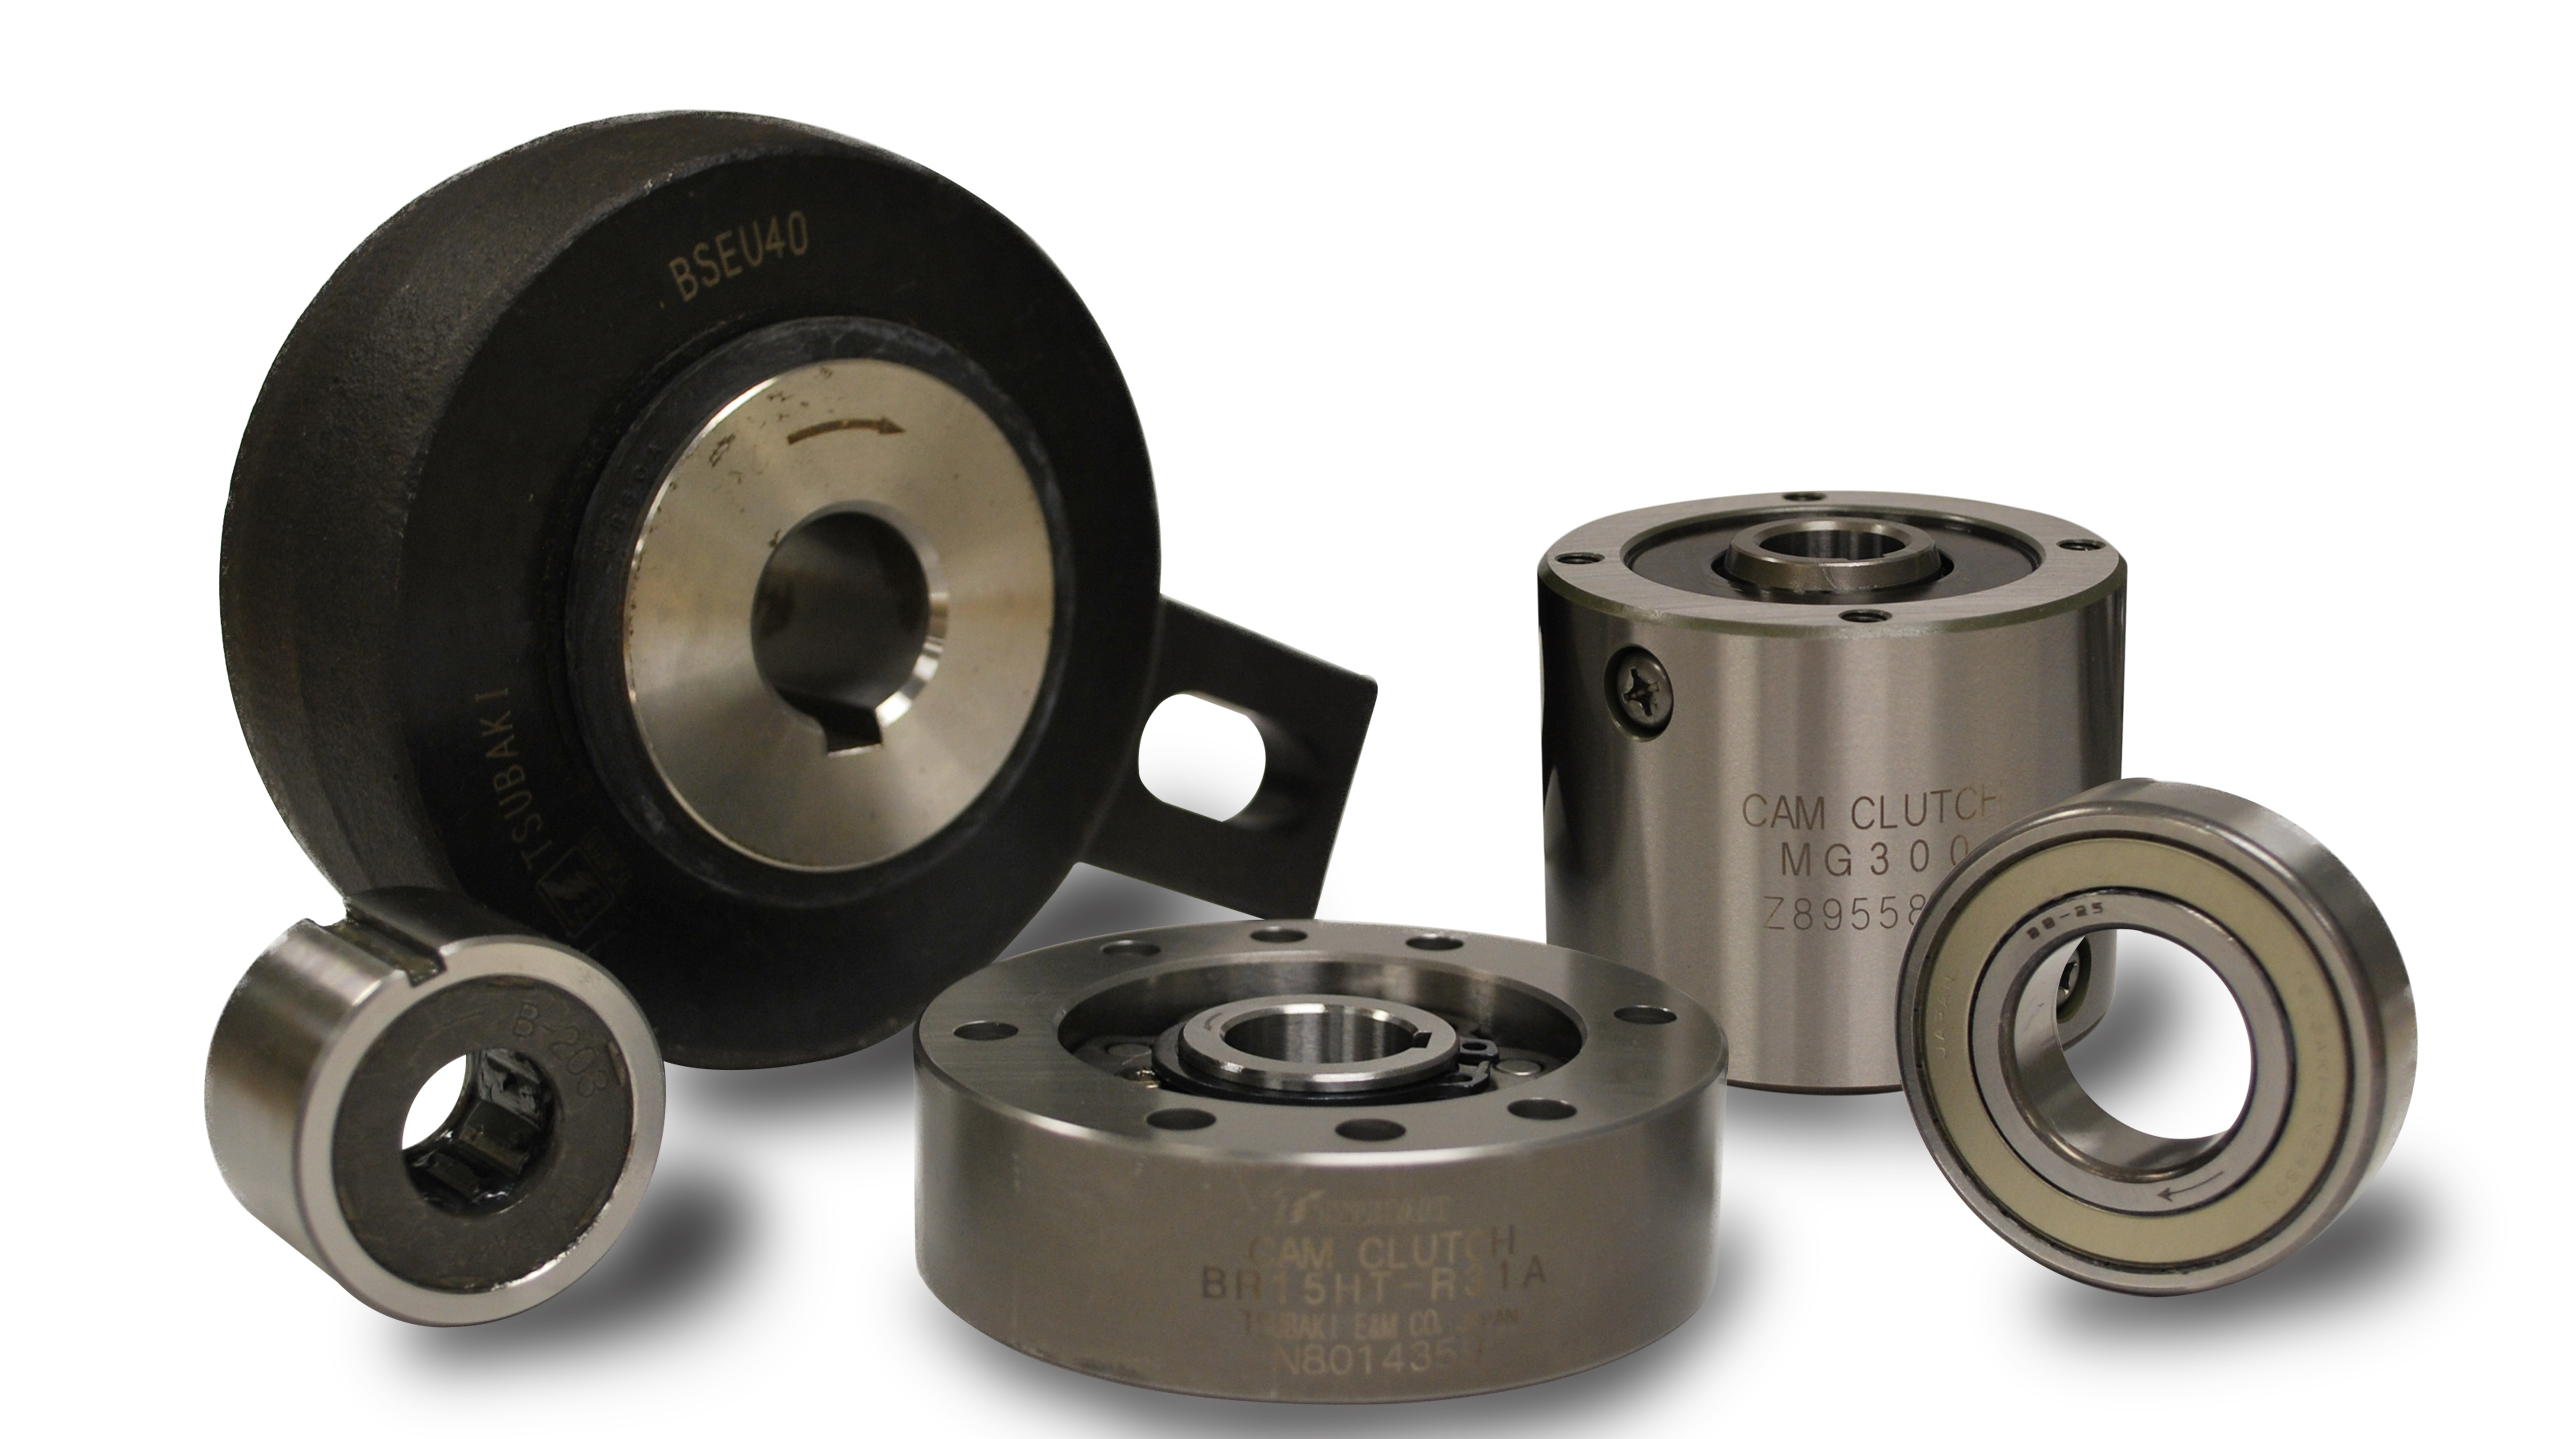 Cam clutch solutions from Tsubaki Canada